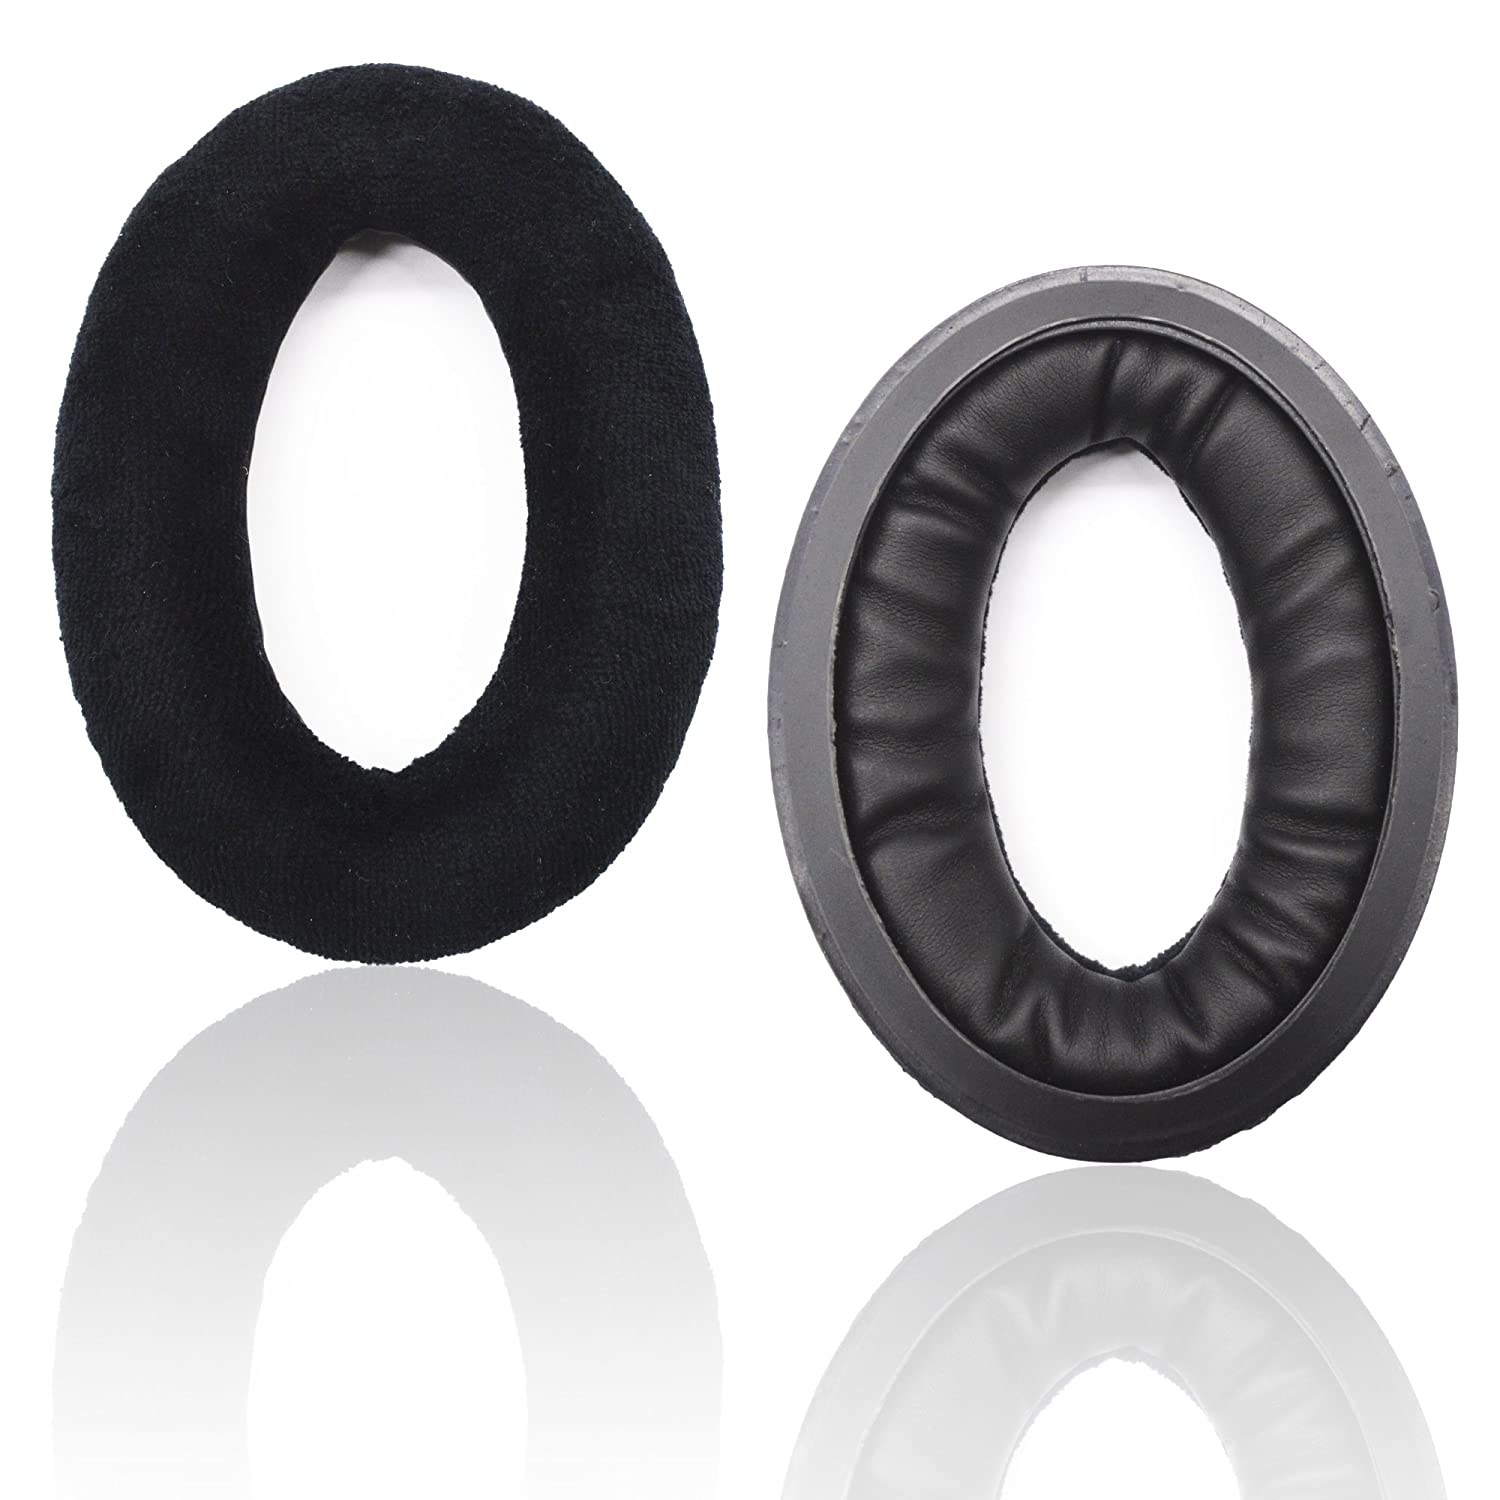 883c13d4ac9 Amazon.com: Replacement Ear Pads for Sennheiser HD515 HD518s HD555 HD569  HD559 HD595 HD598 HD599 HD558 PC360,Headphones Earpads Cushion with Velour  Black: ...